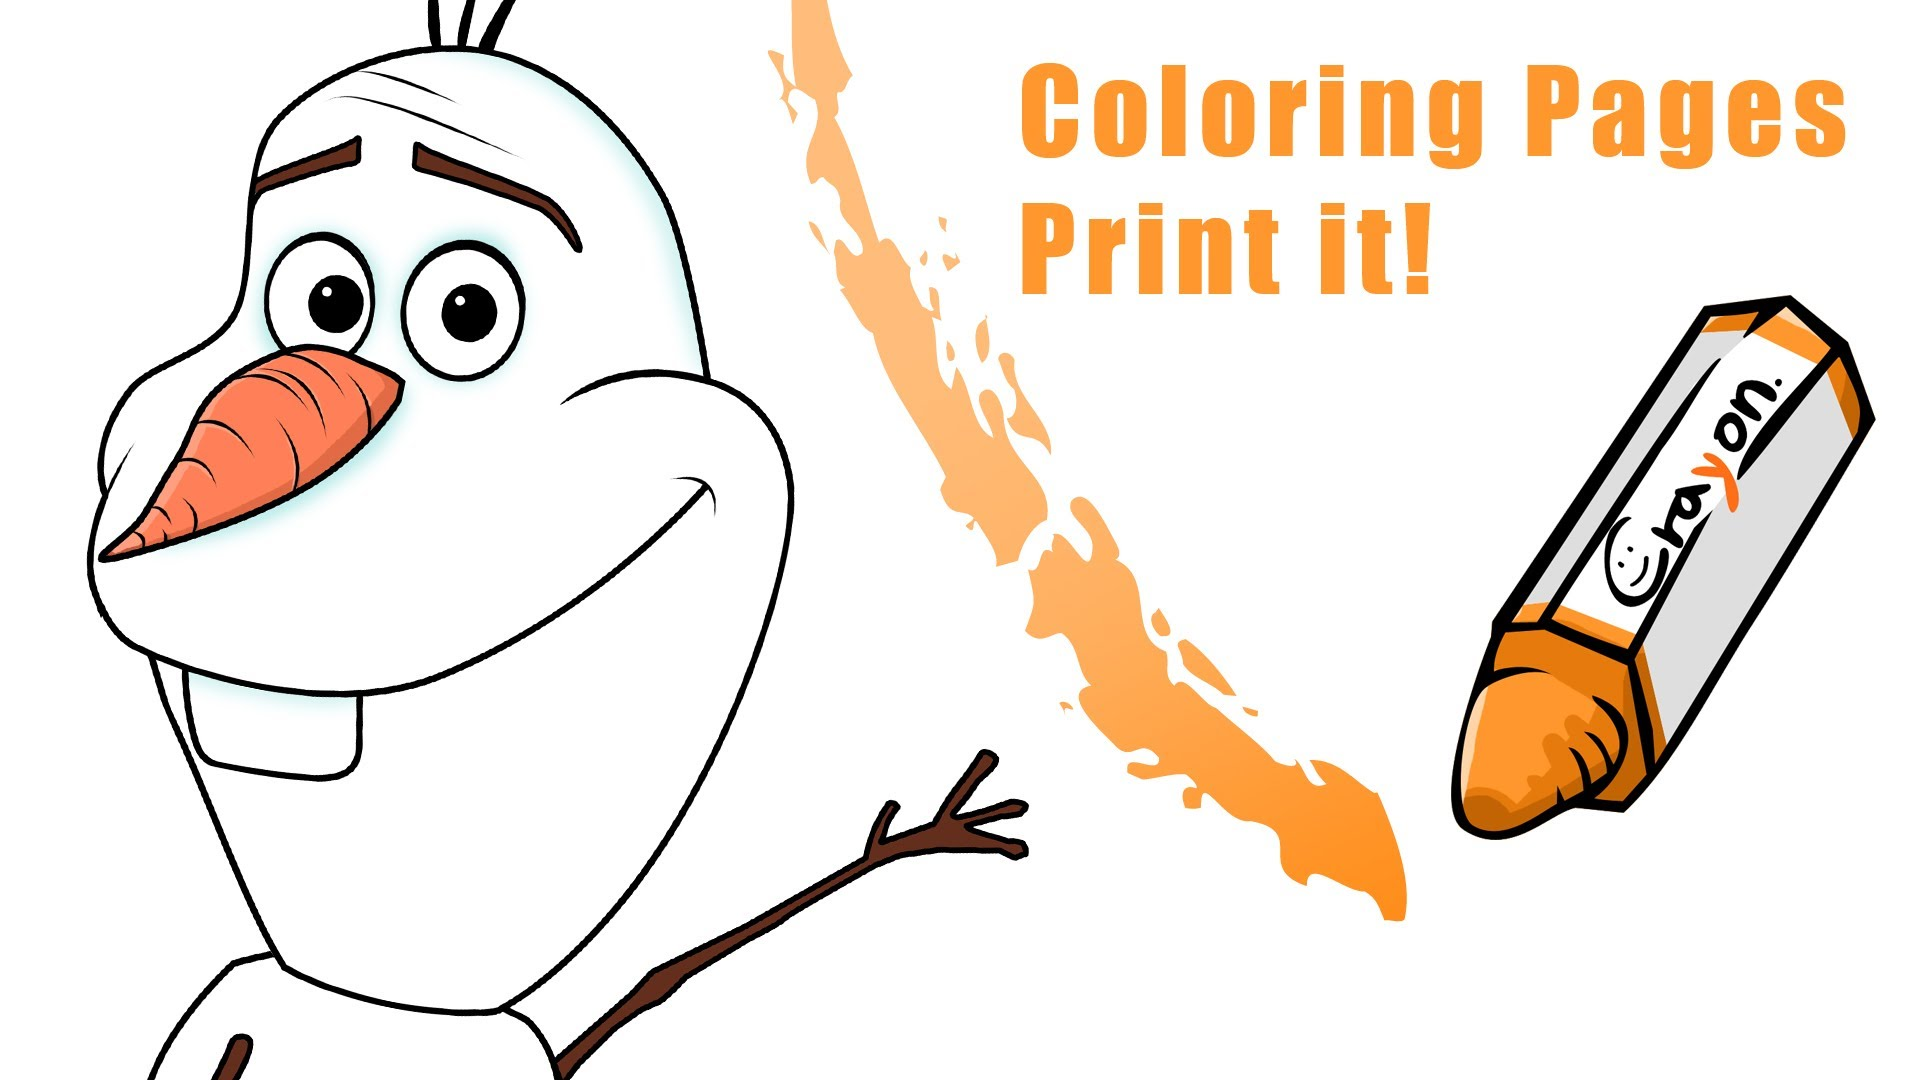 1920x1080 How To Draw A Olaf From Frozen. (Create A Coloring Pages)